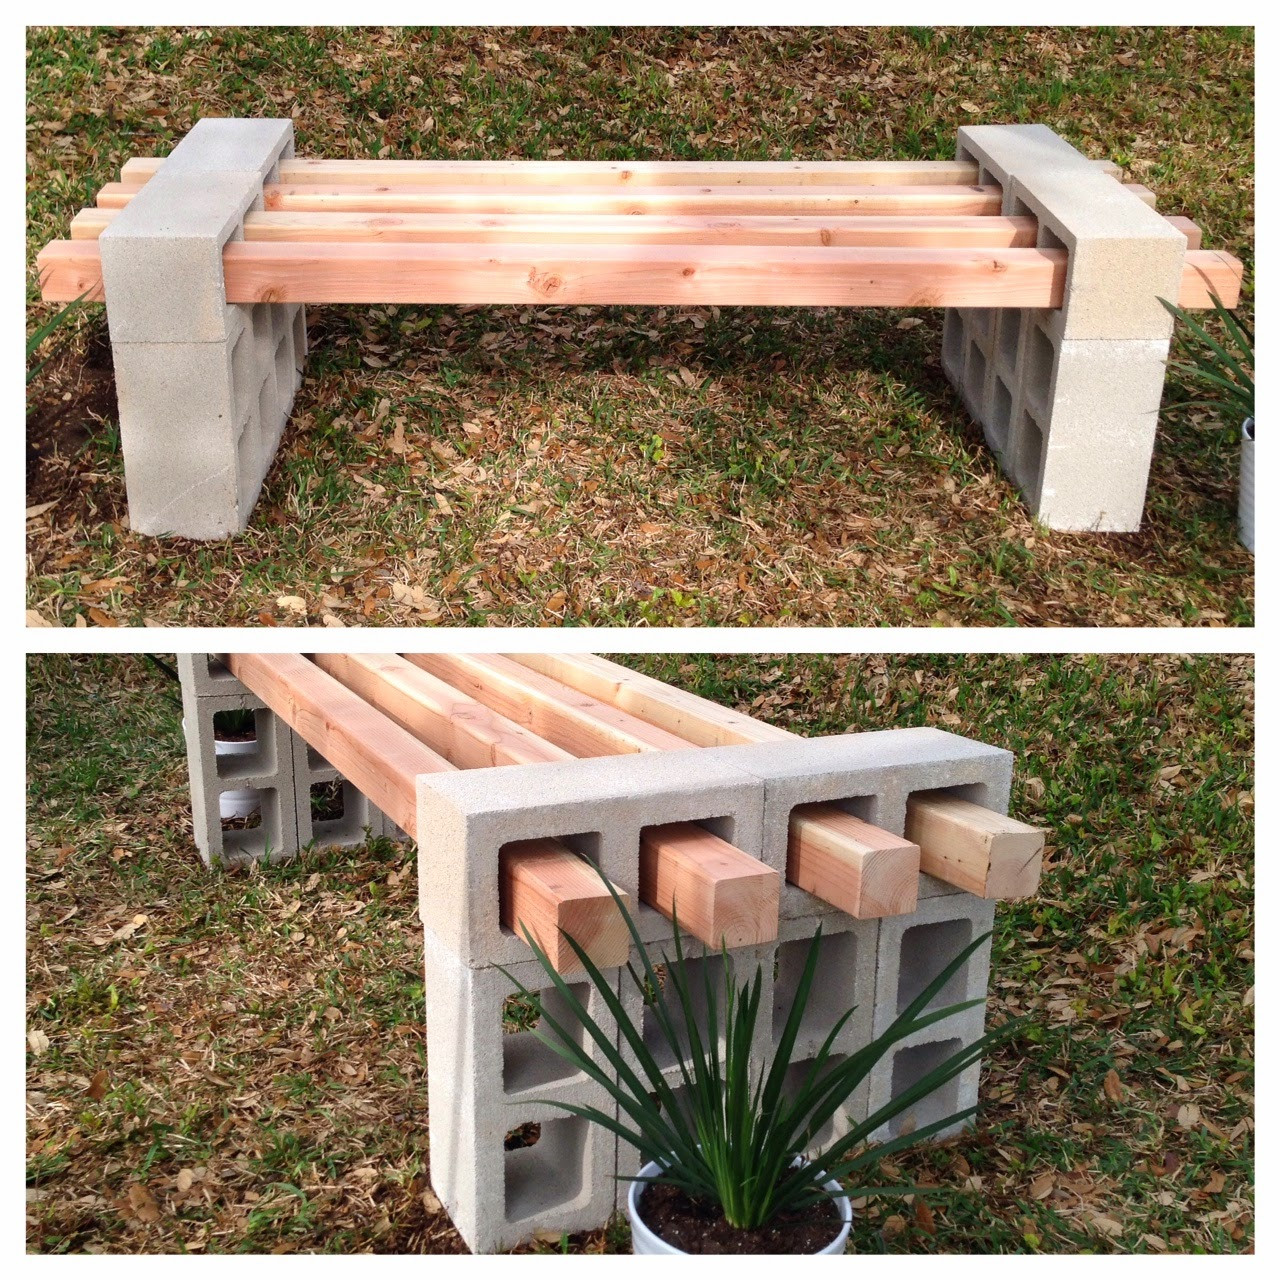 Best ideas about Cinder Block Bench DIY . Save or Pin 20 Awesome DIY Cinder Block Projects For Your Homestead Now.